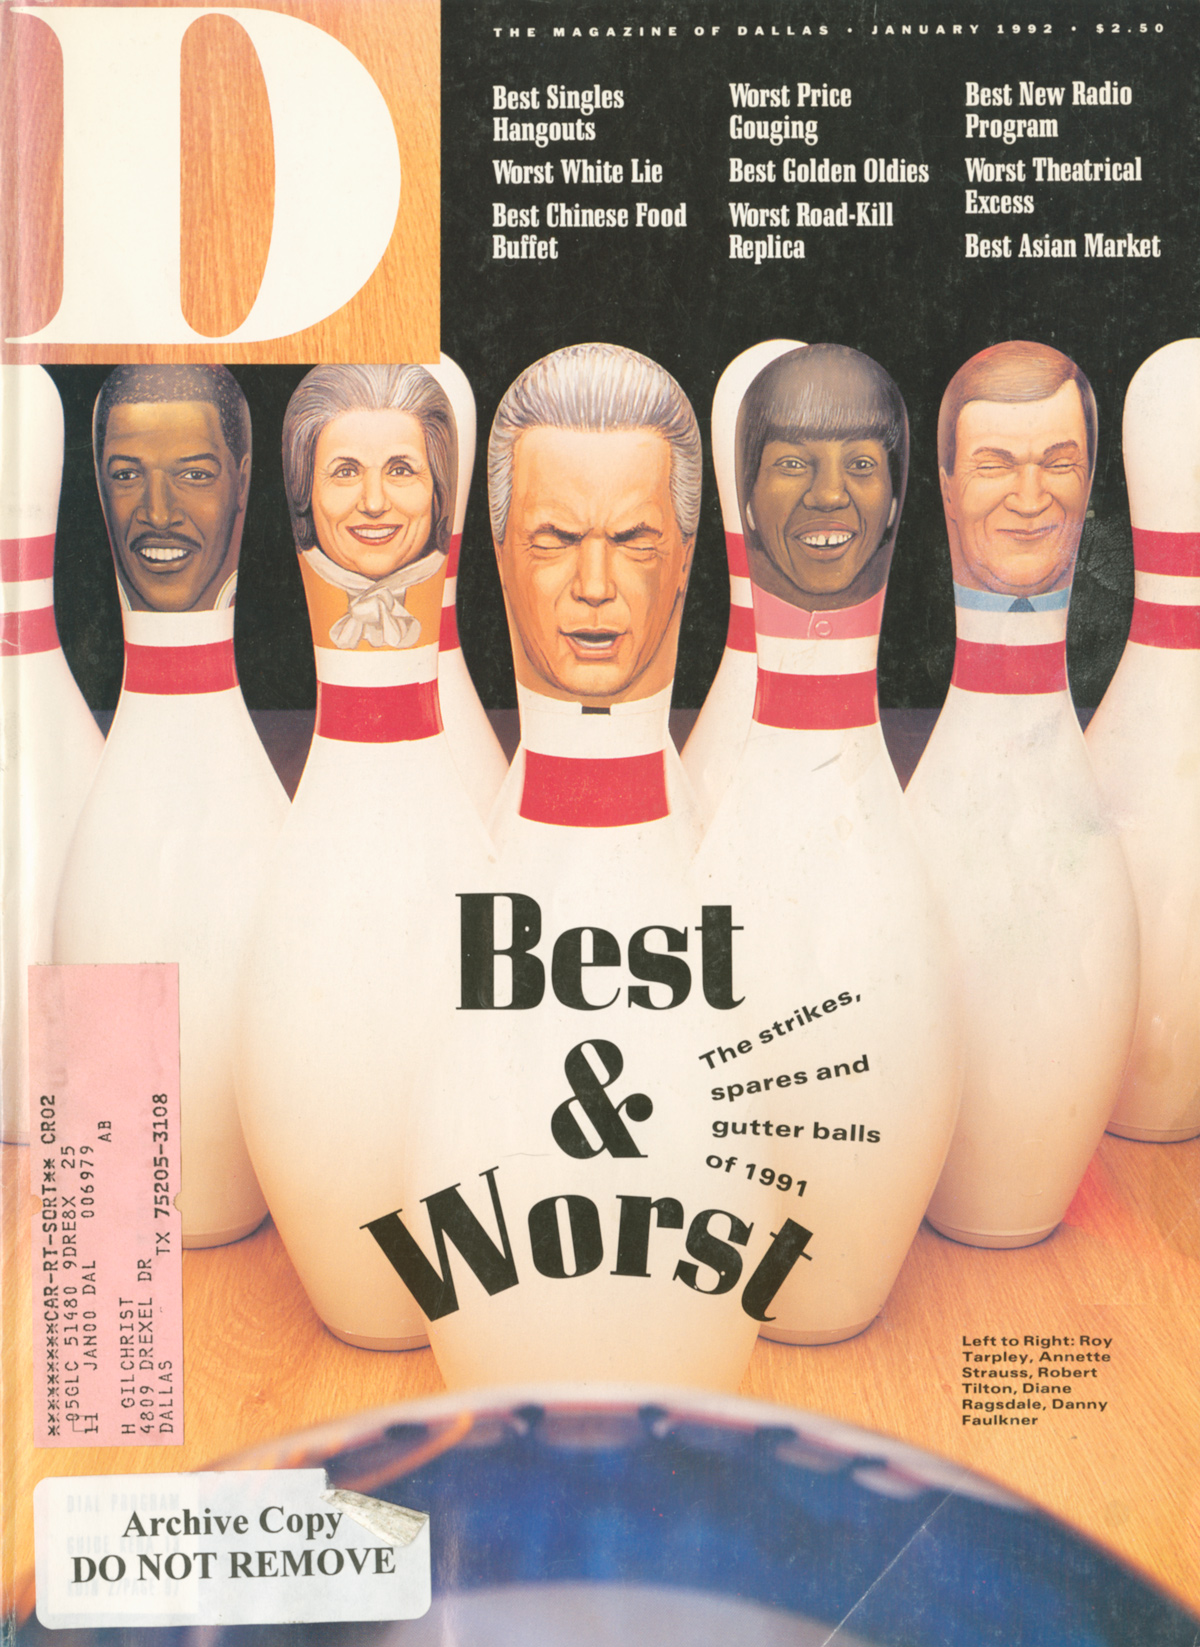 January 1992 cover